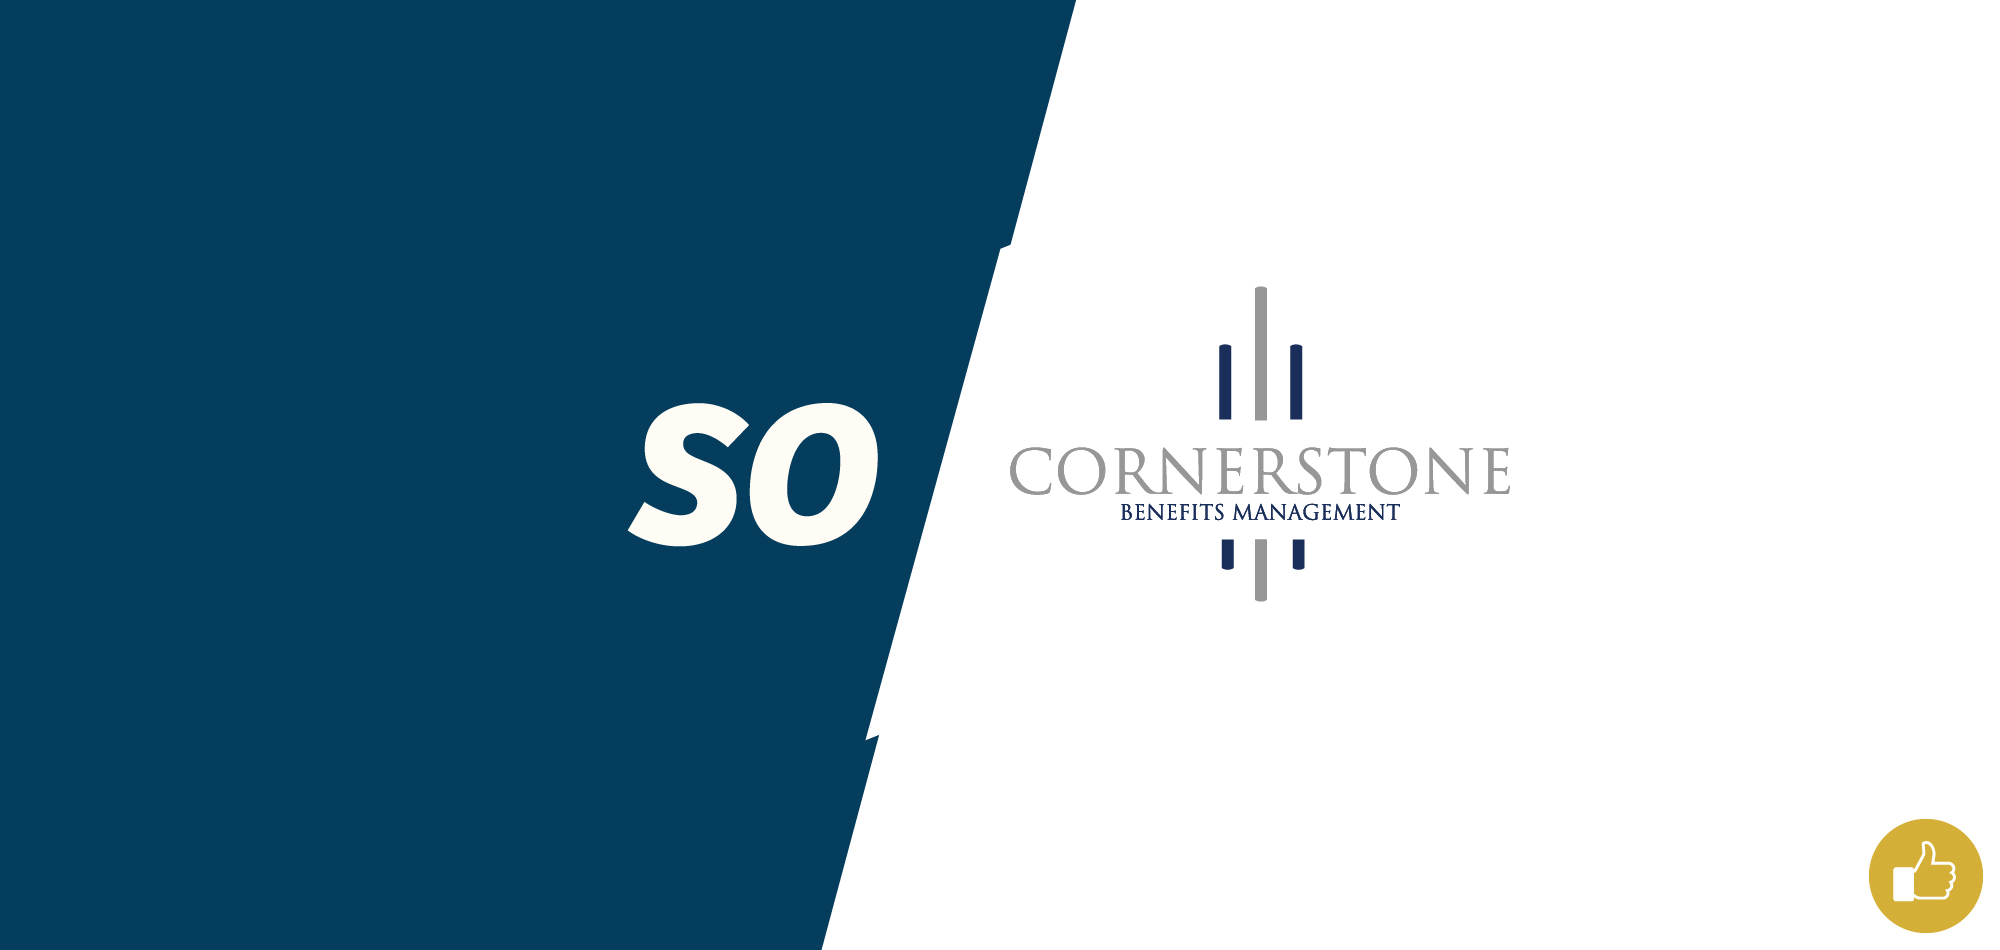 Cornerstone Benefits Management Group